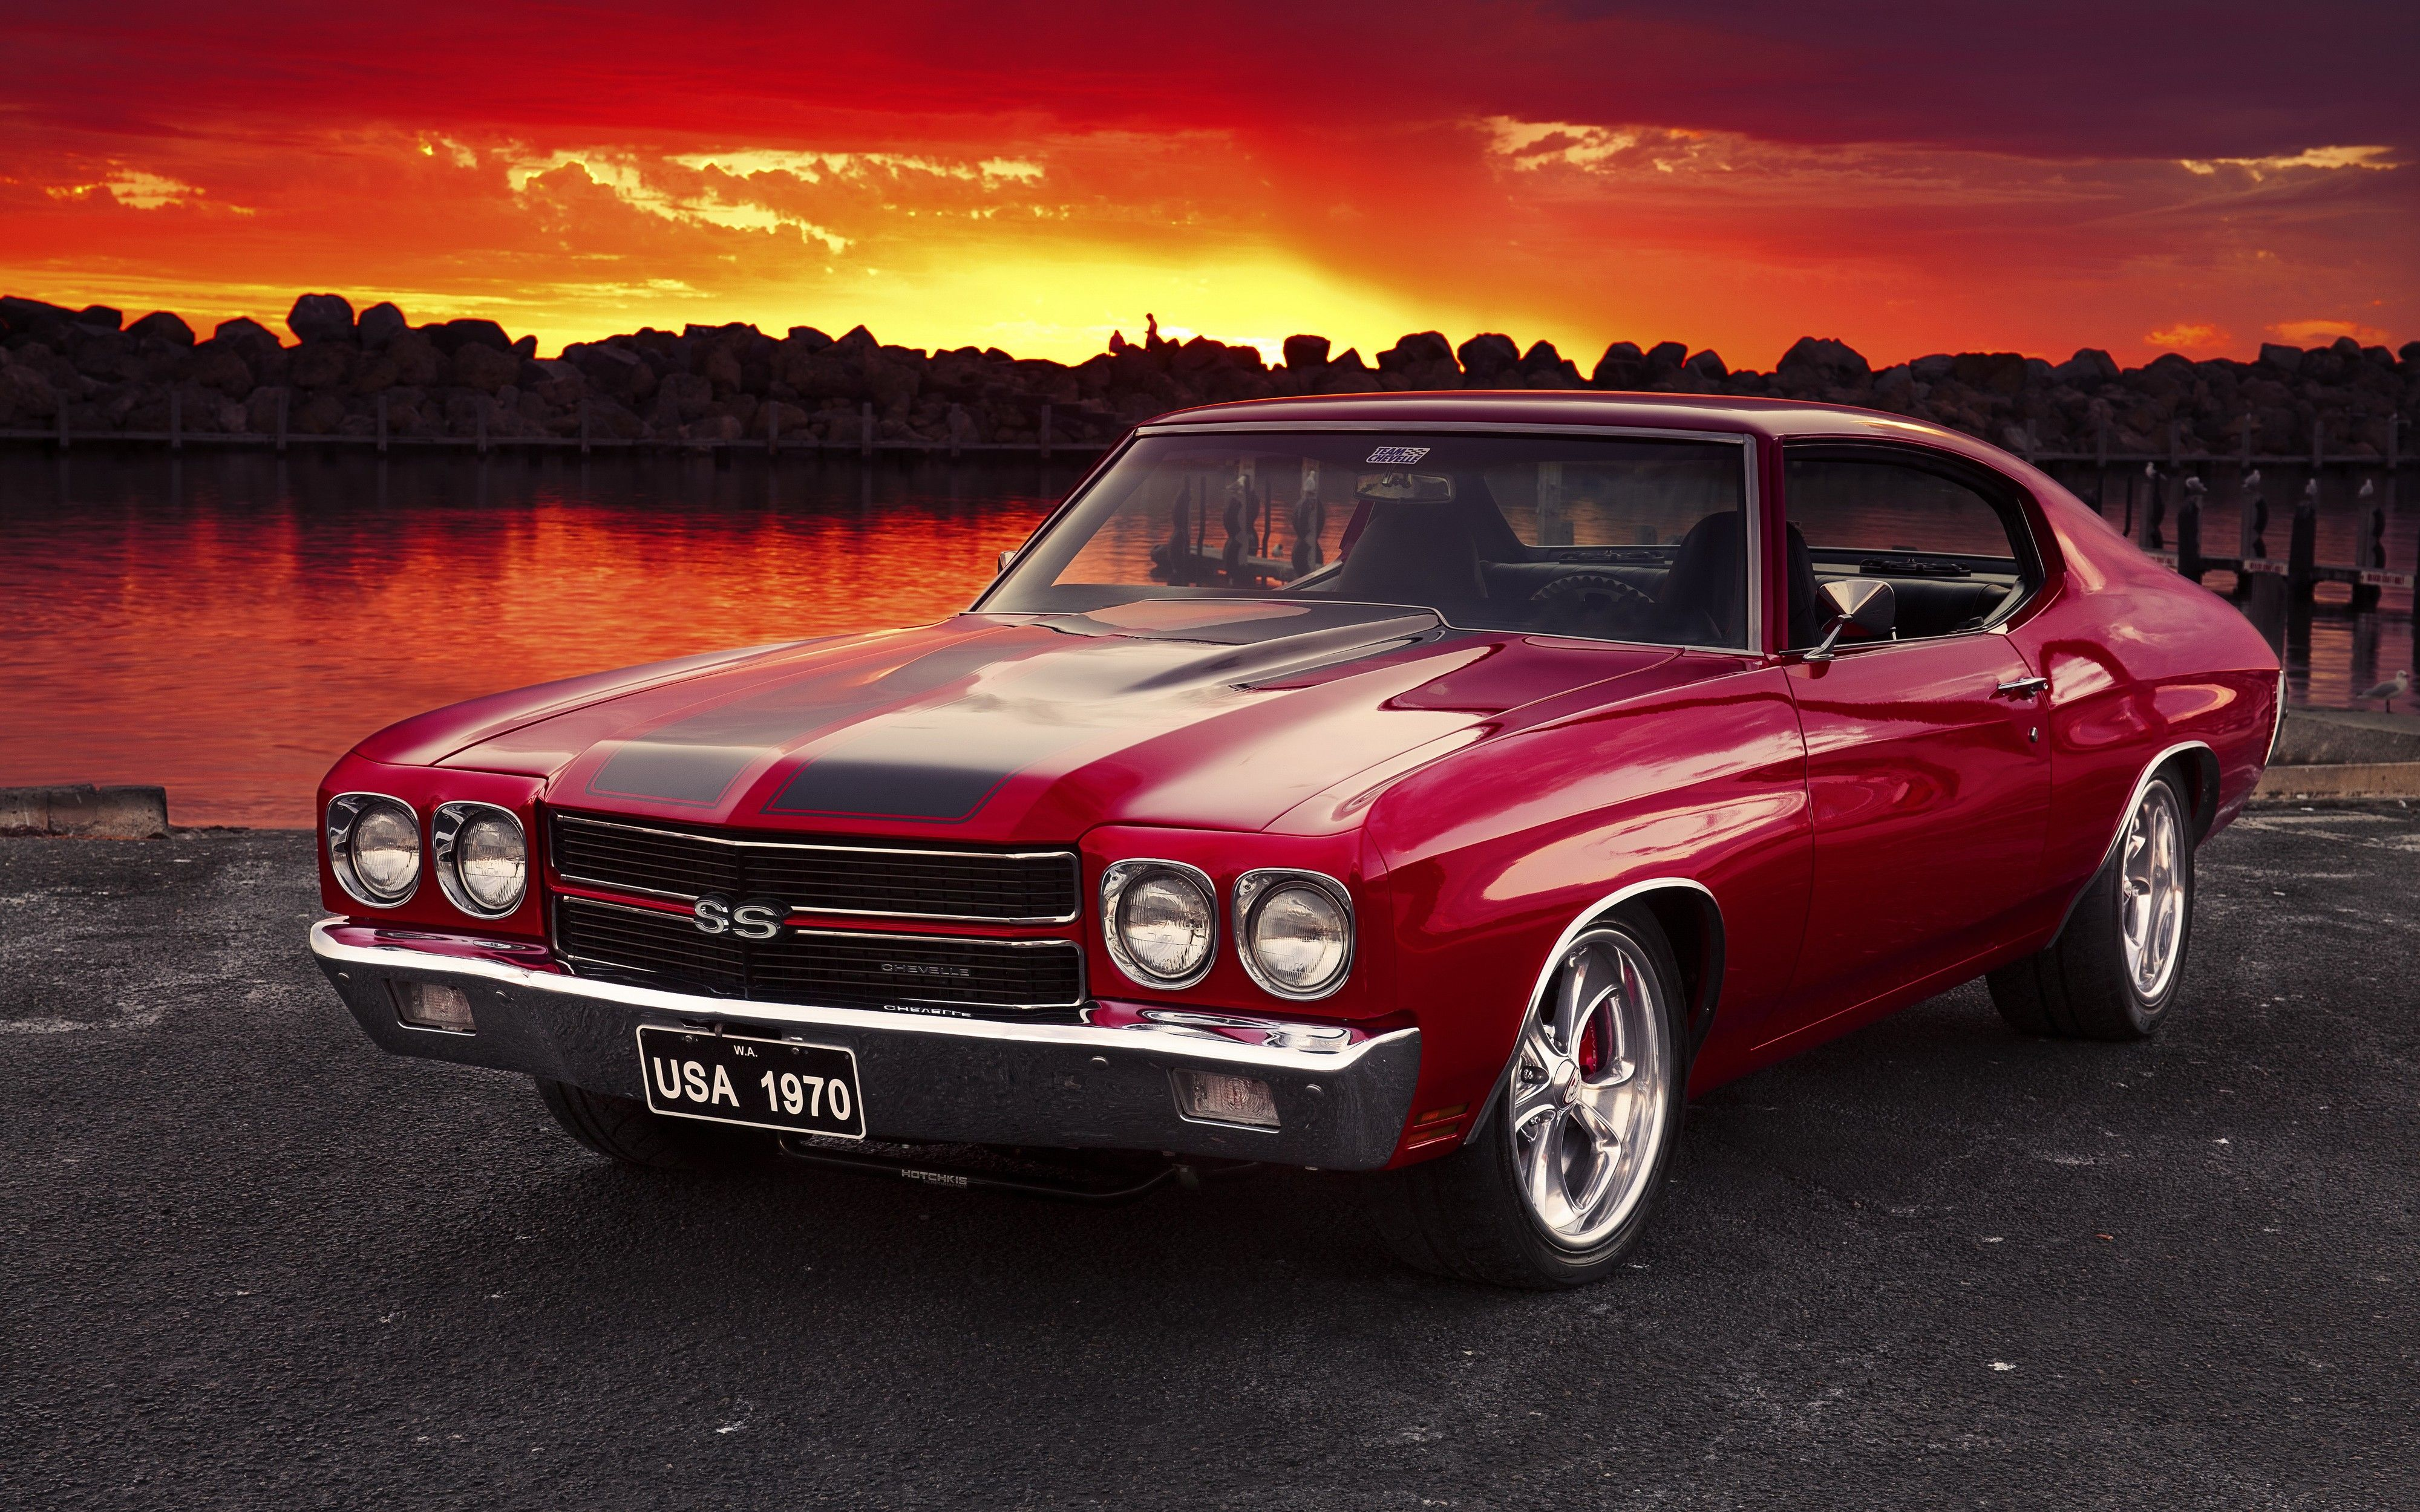 Pin On Mostly Chevelles